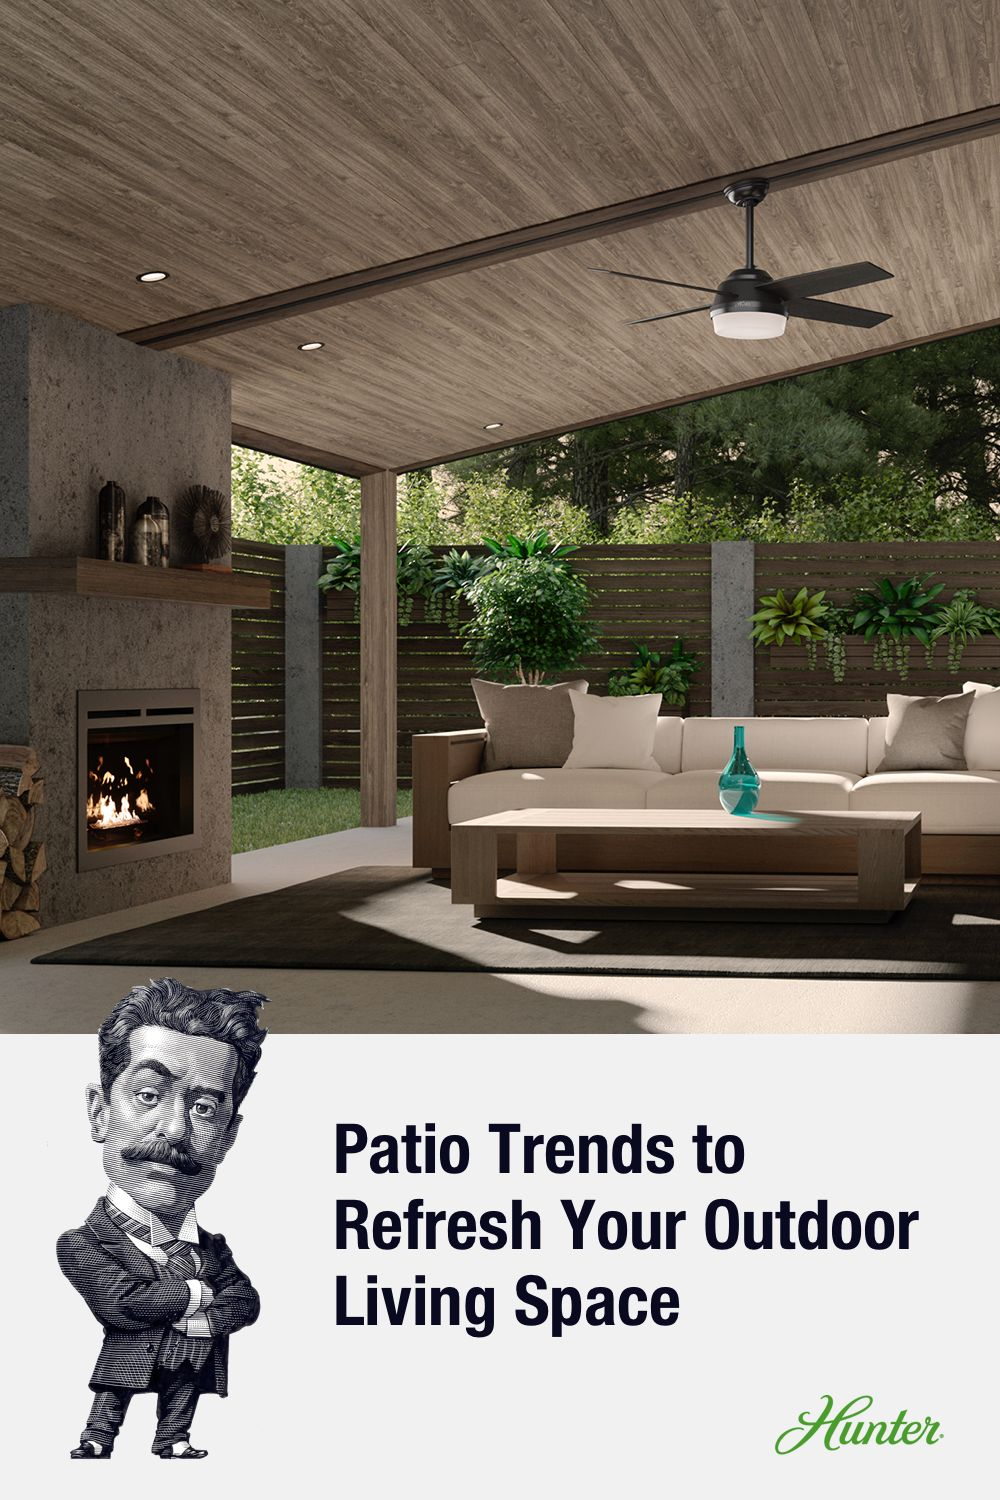 Patio Trends To Refresh Your Outdoor Living Space Patio Trends Outdoor Living Space Outdoor Living